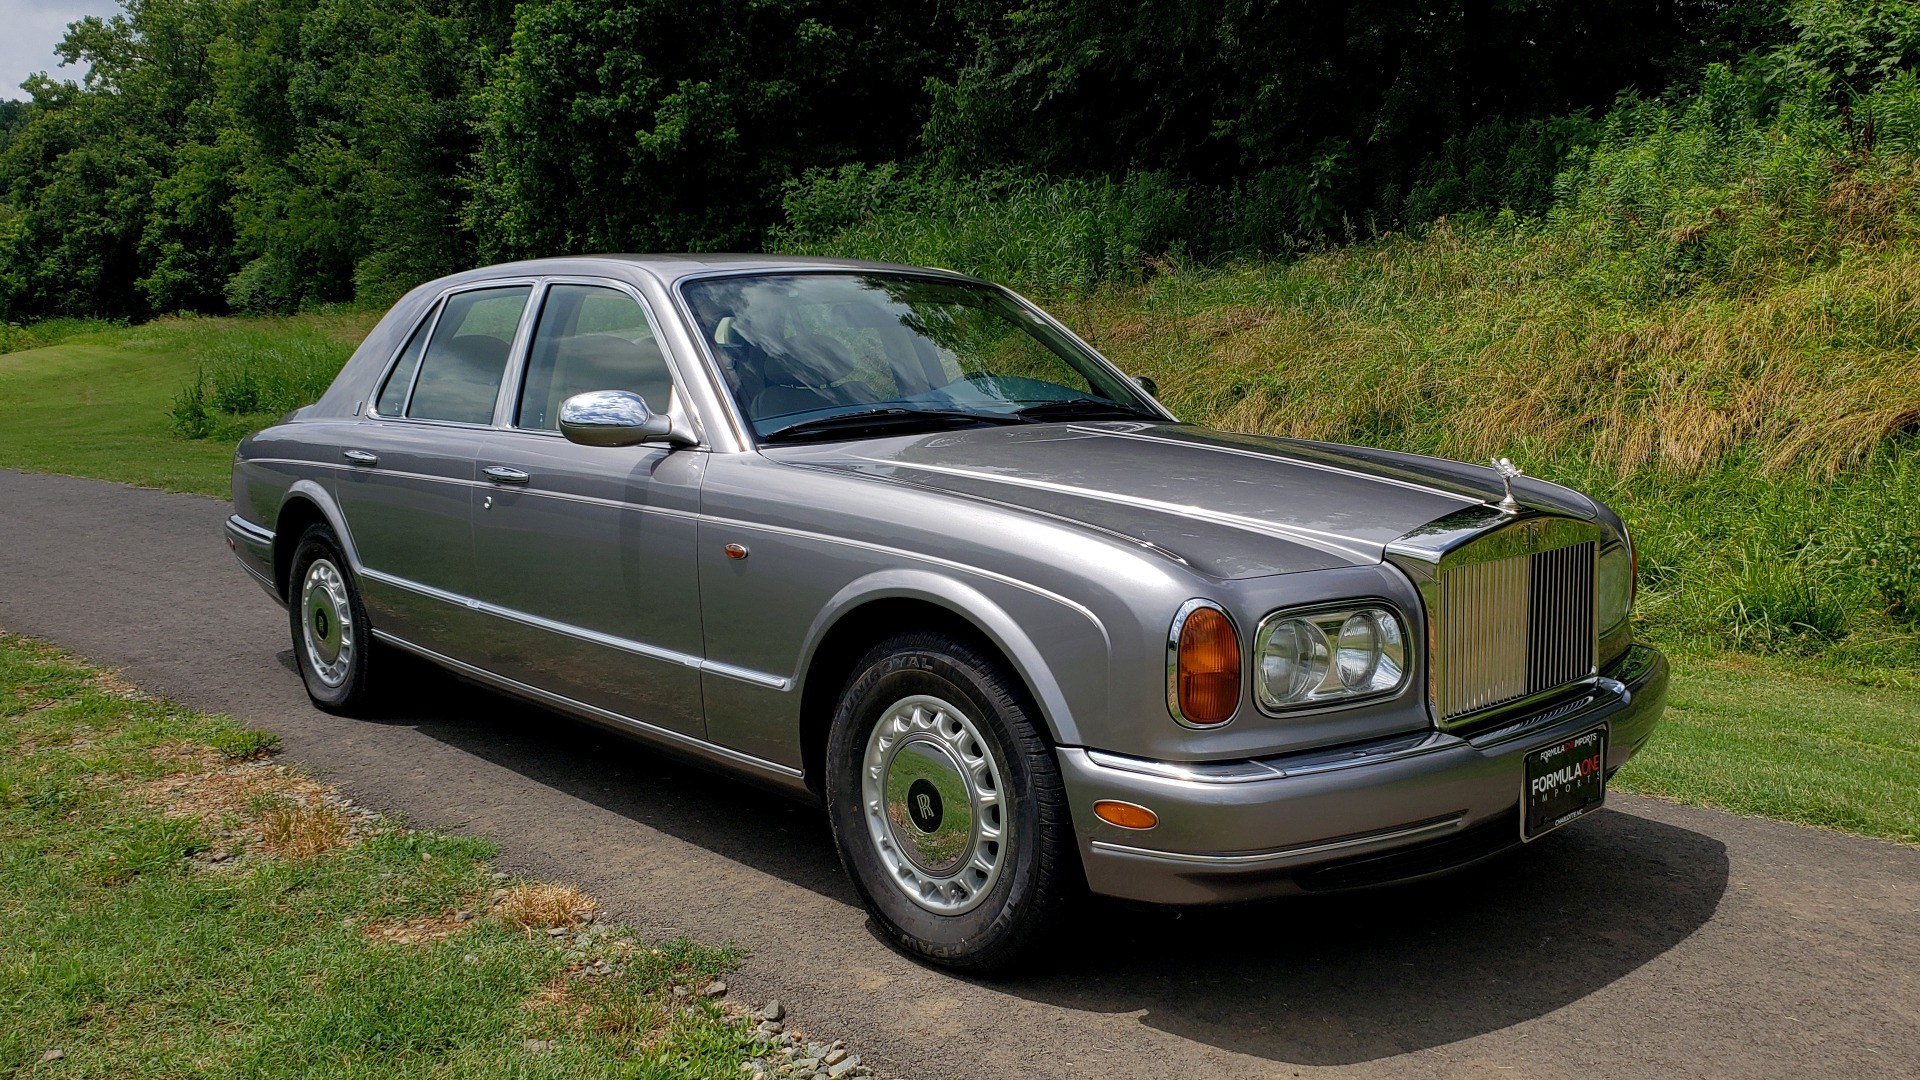 Used 1999 Rolls-Royce SILVER SERAPH 5.4L V12 / AUTO TRANS / LOW MILES / VERY CLEAN! for sale $34,999 at Formula Imports in Charlotte NC 28227 19